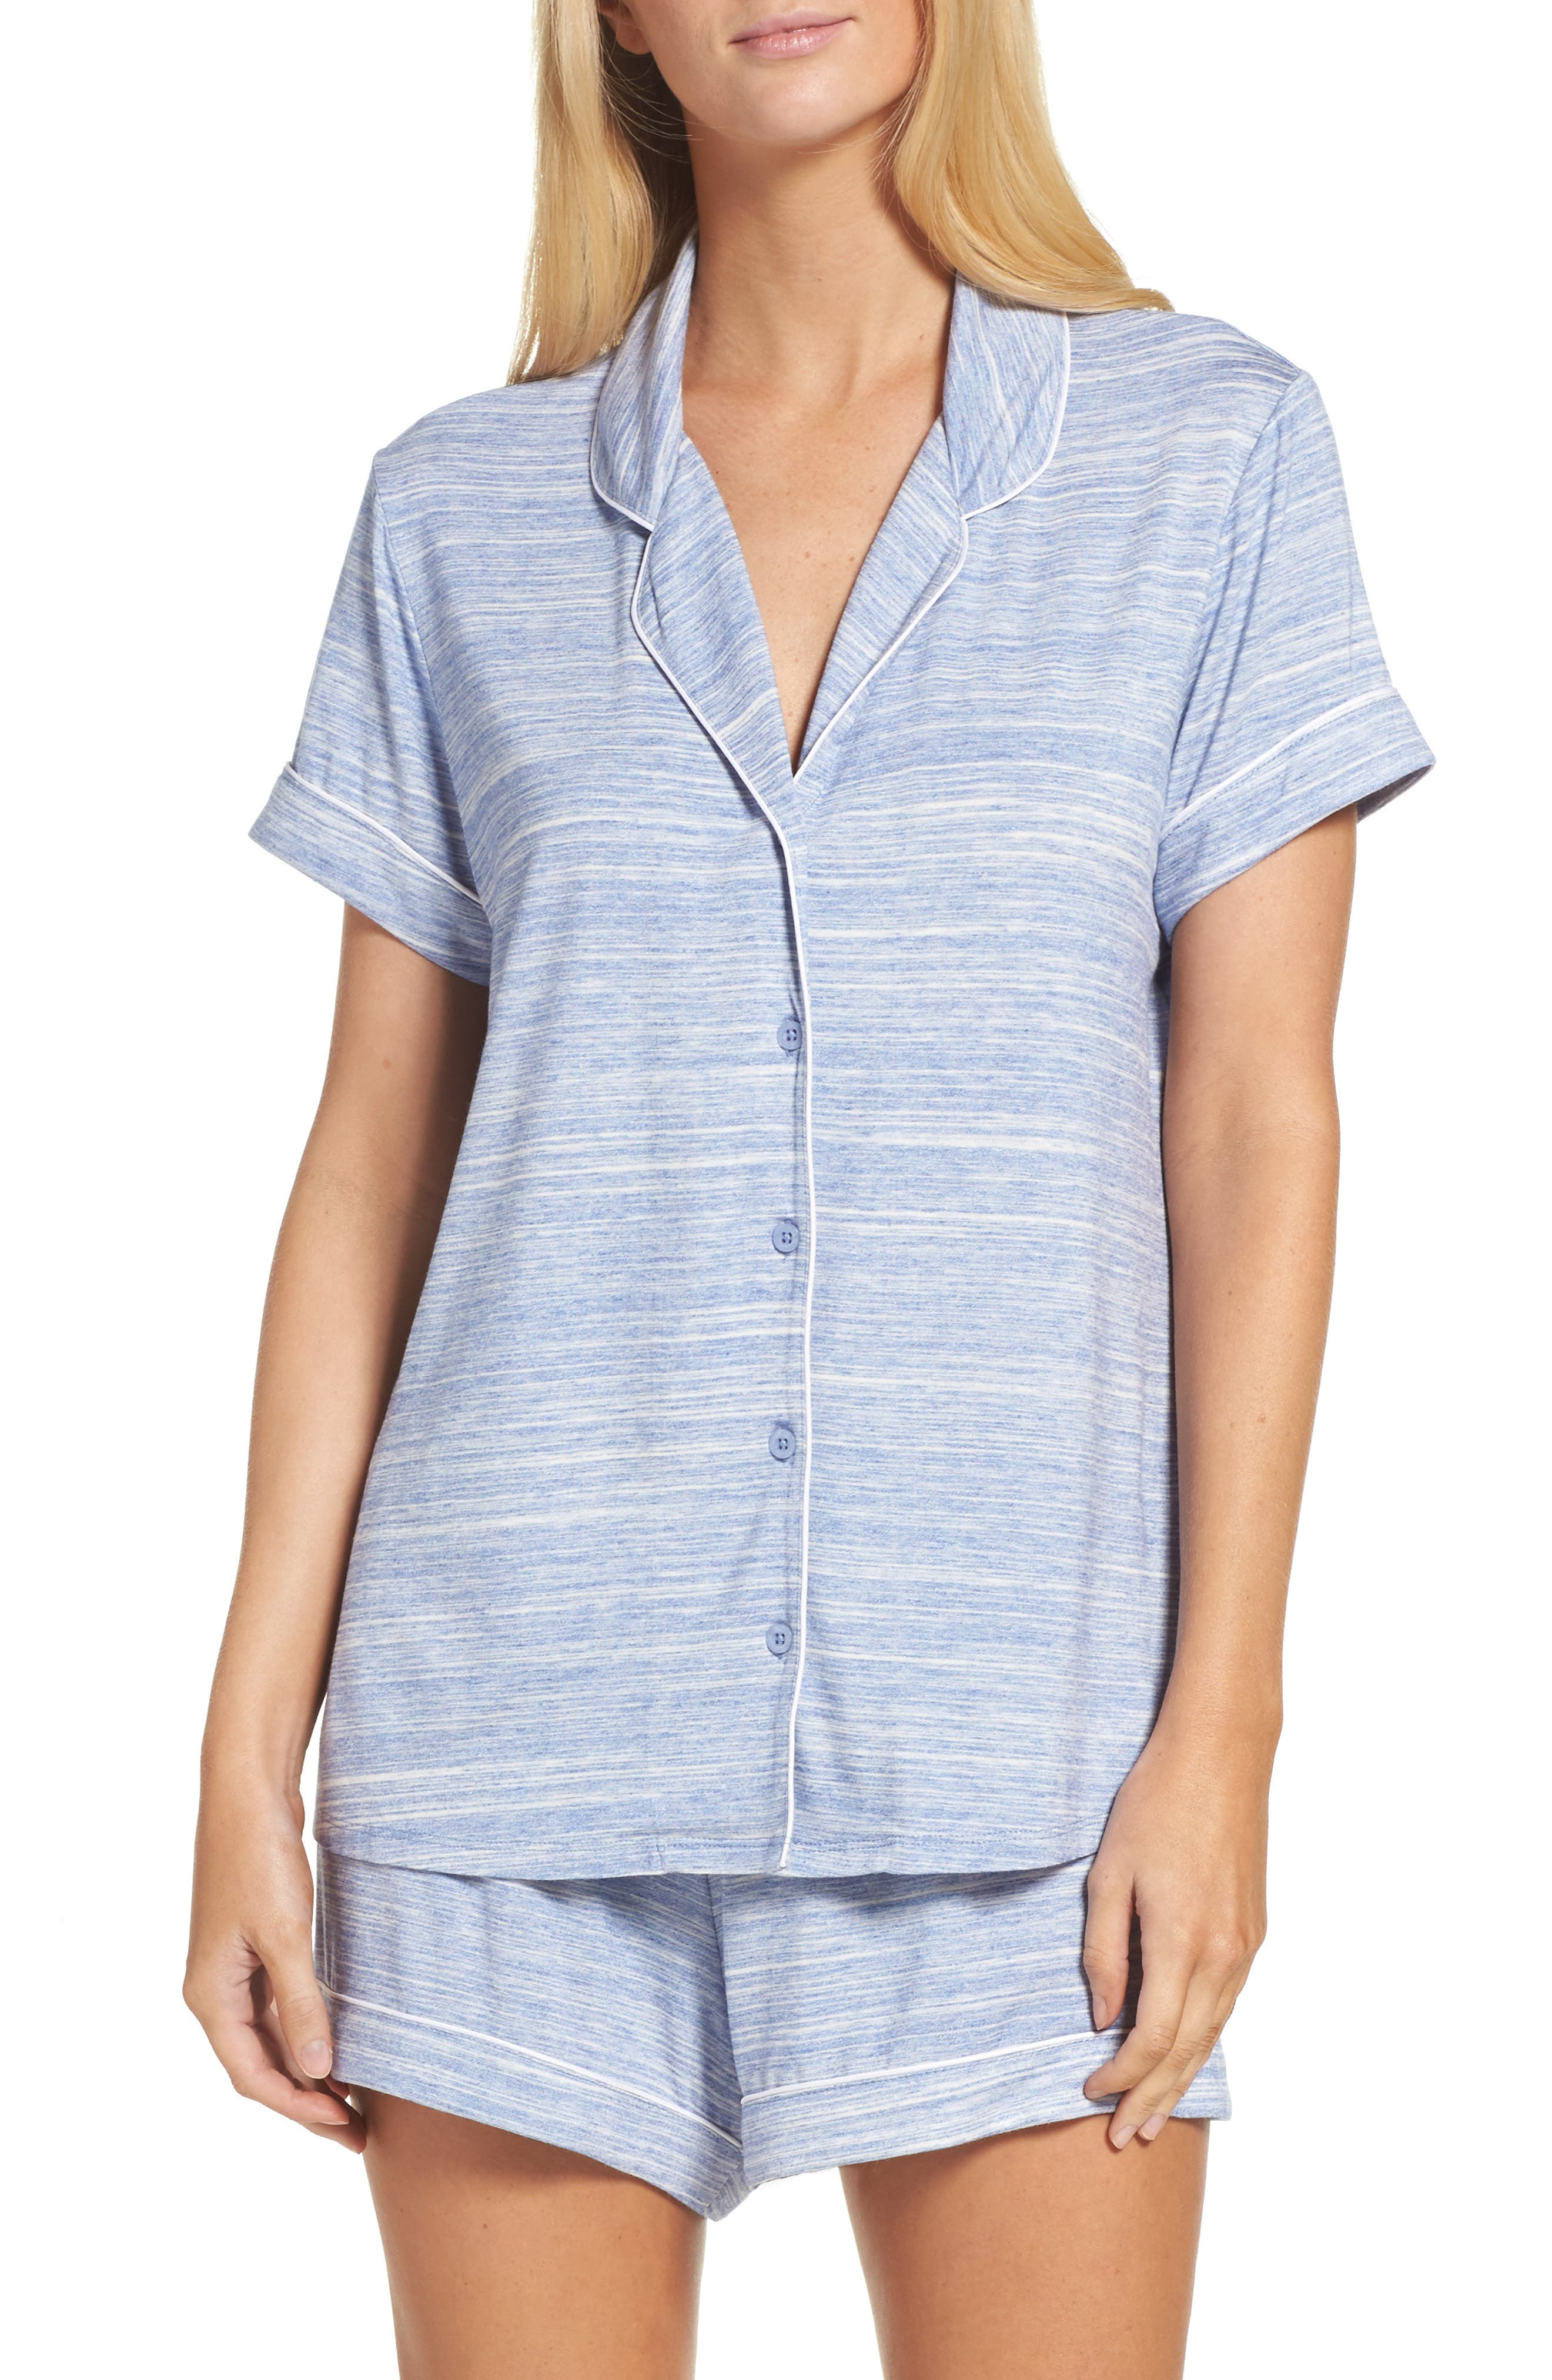 Alternate Image 1 Selected - Nordstrom Lingerie 'Moonlight' Short Pajamas